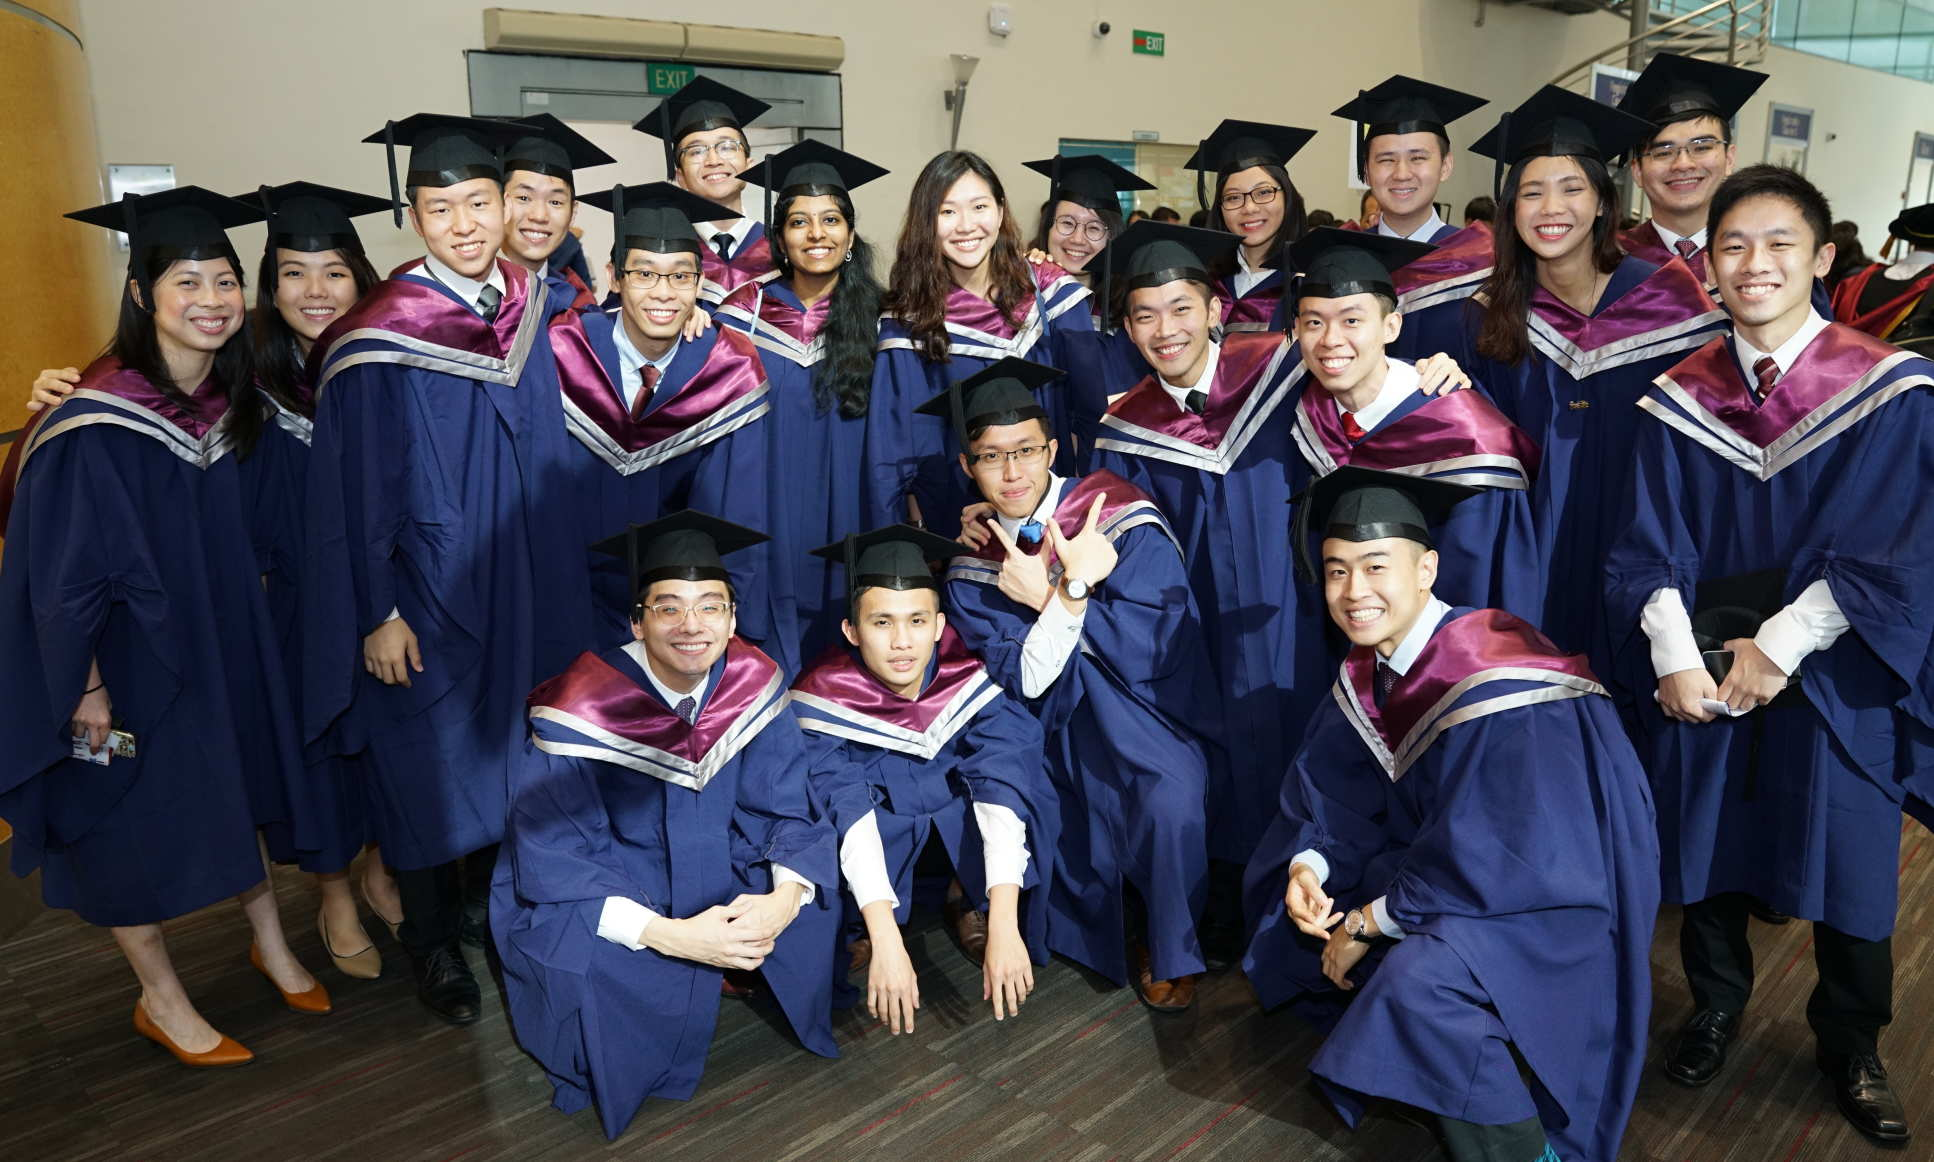 LKCMedicin group of graduates